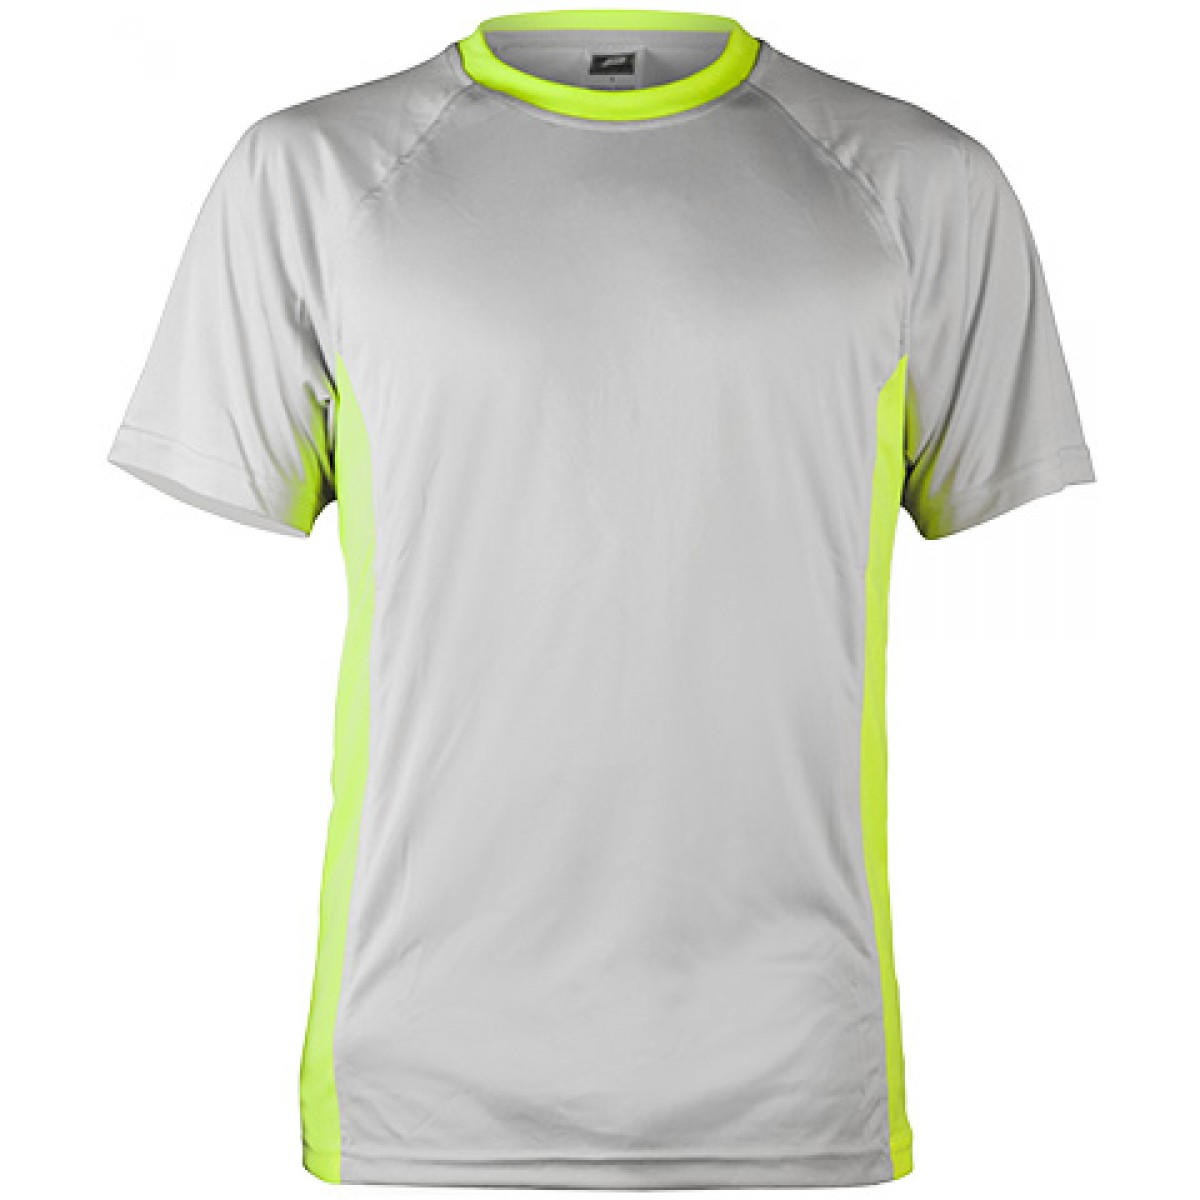 Short Sleeve Performance Fit with Flat-back Mesh Side Insert